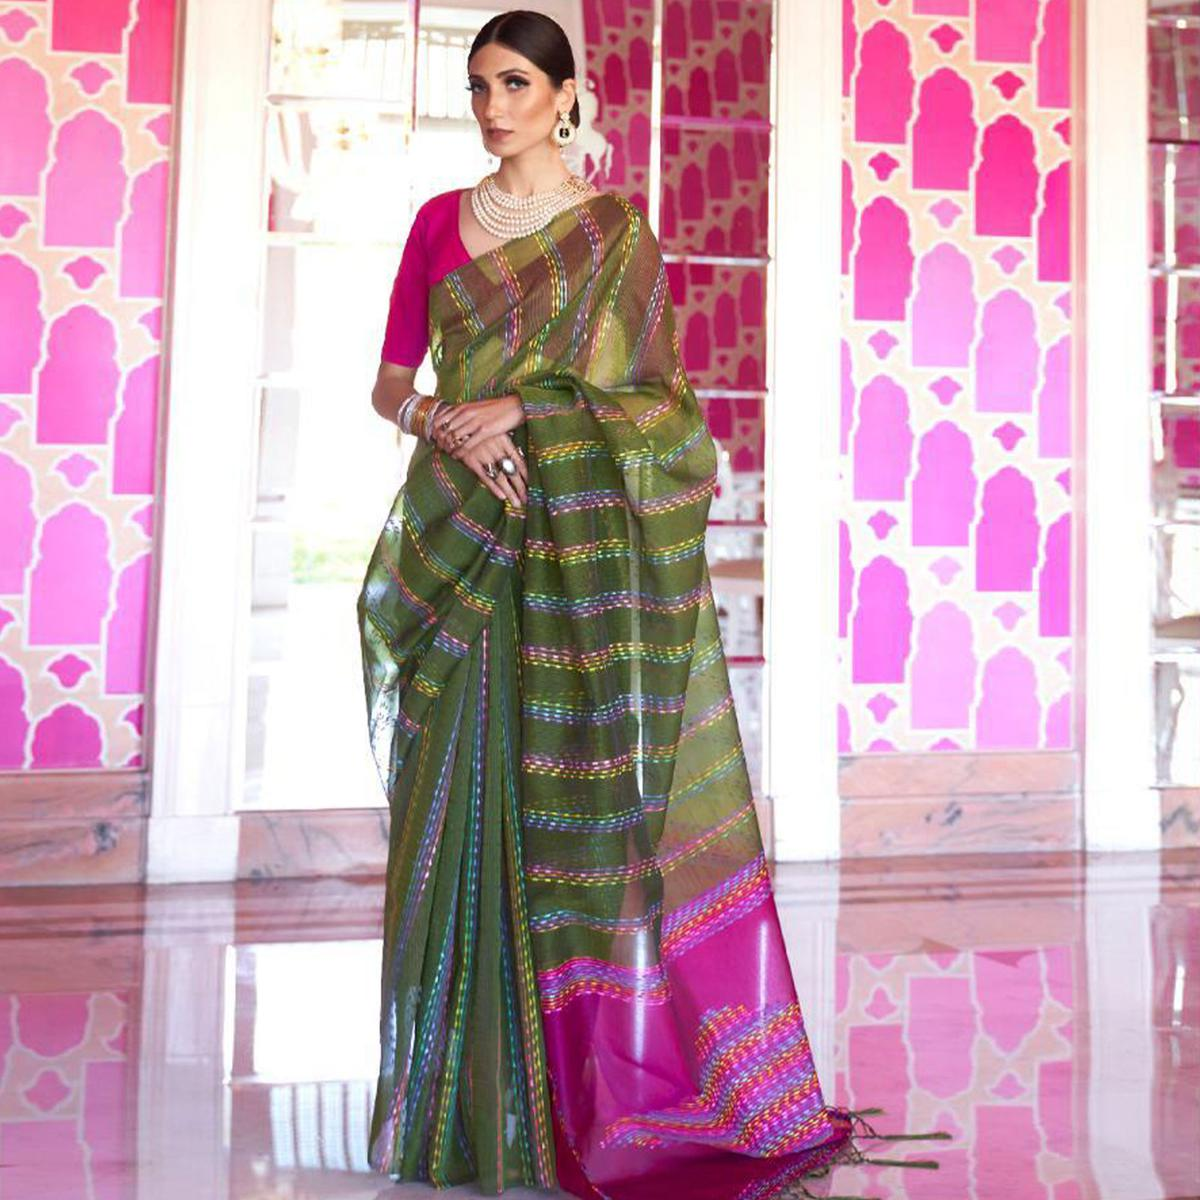 Eye-catching Green Colored Party Wear Embroidered Silk Saree With Tassels